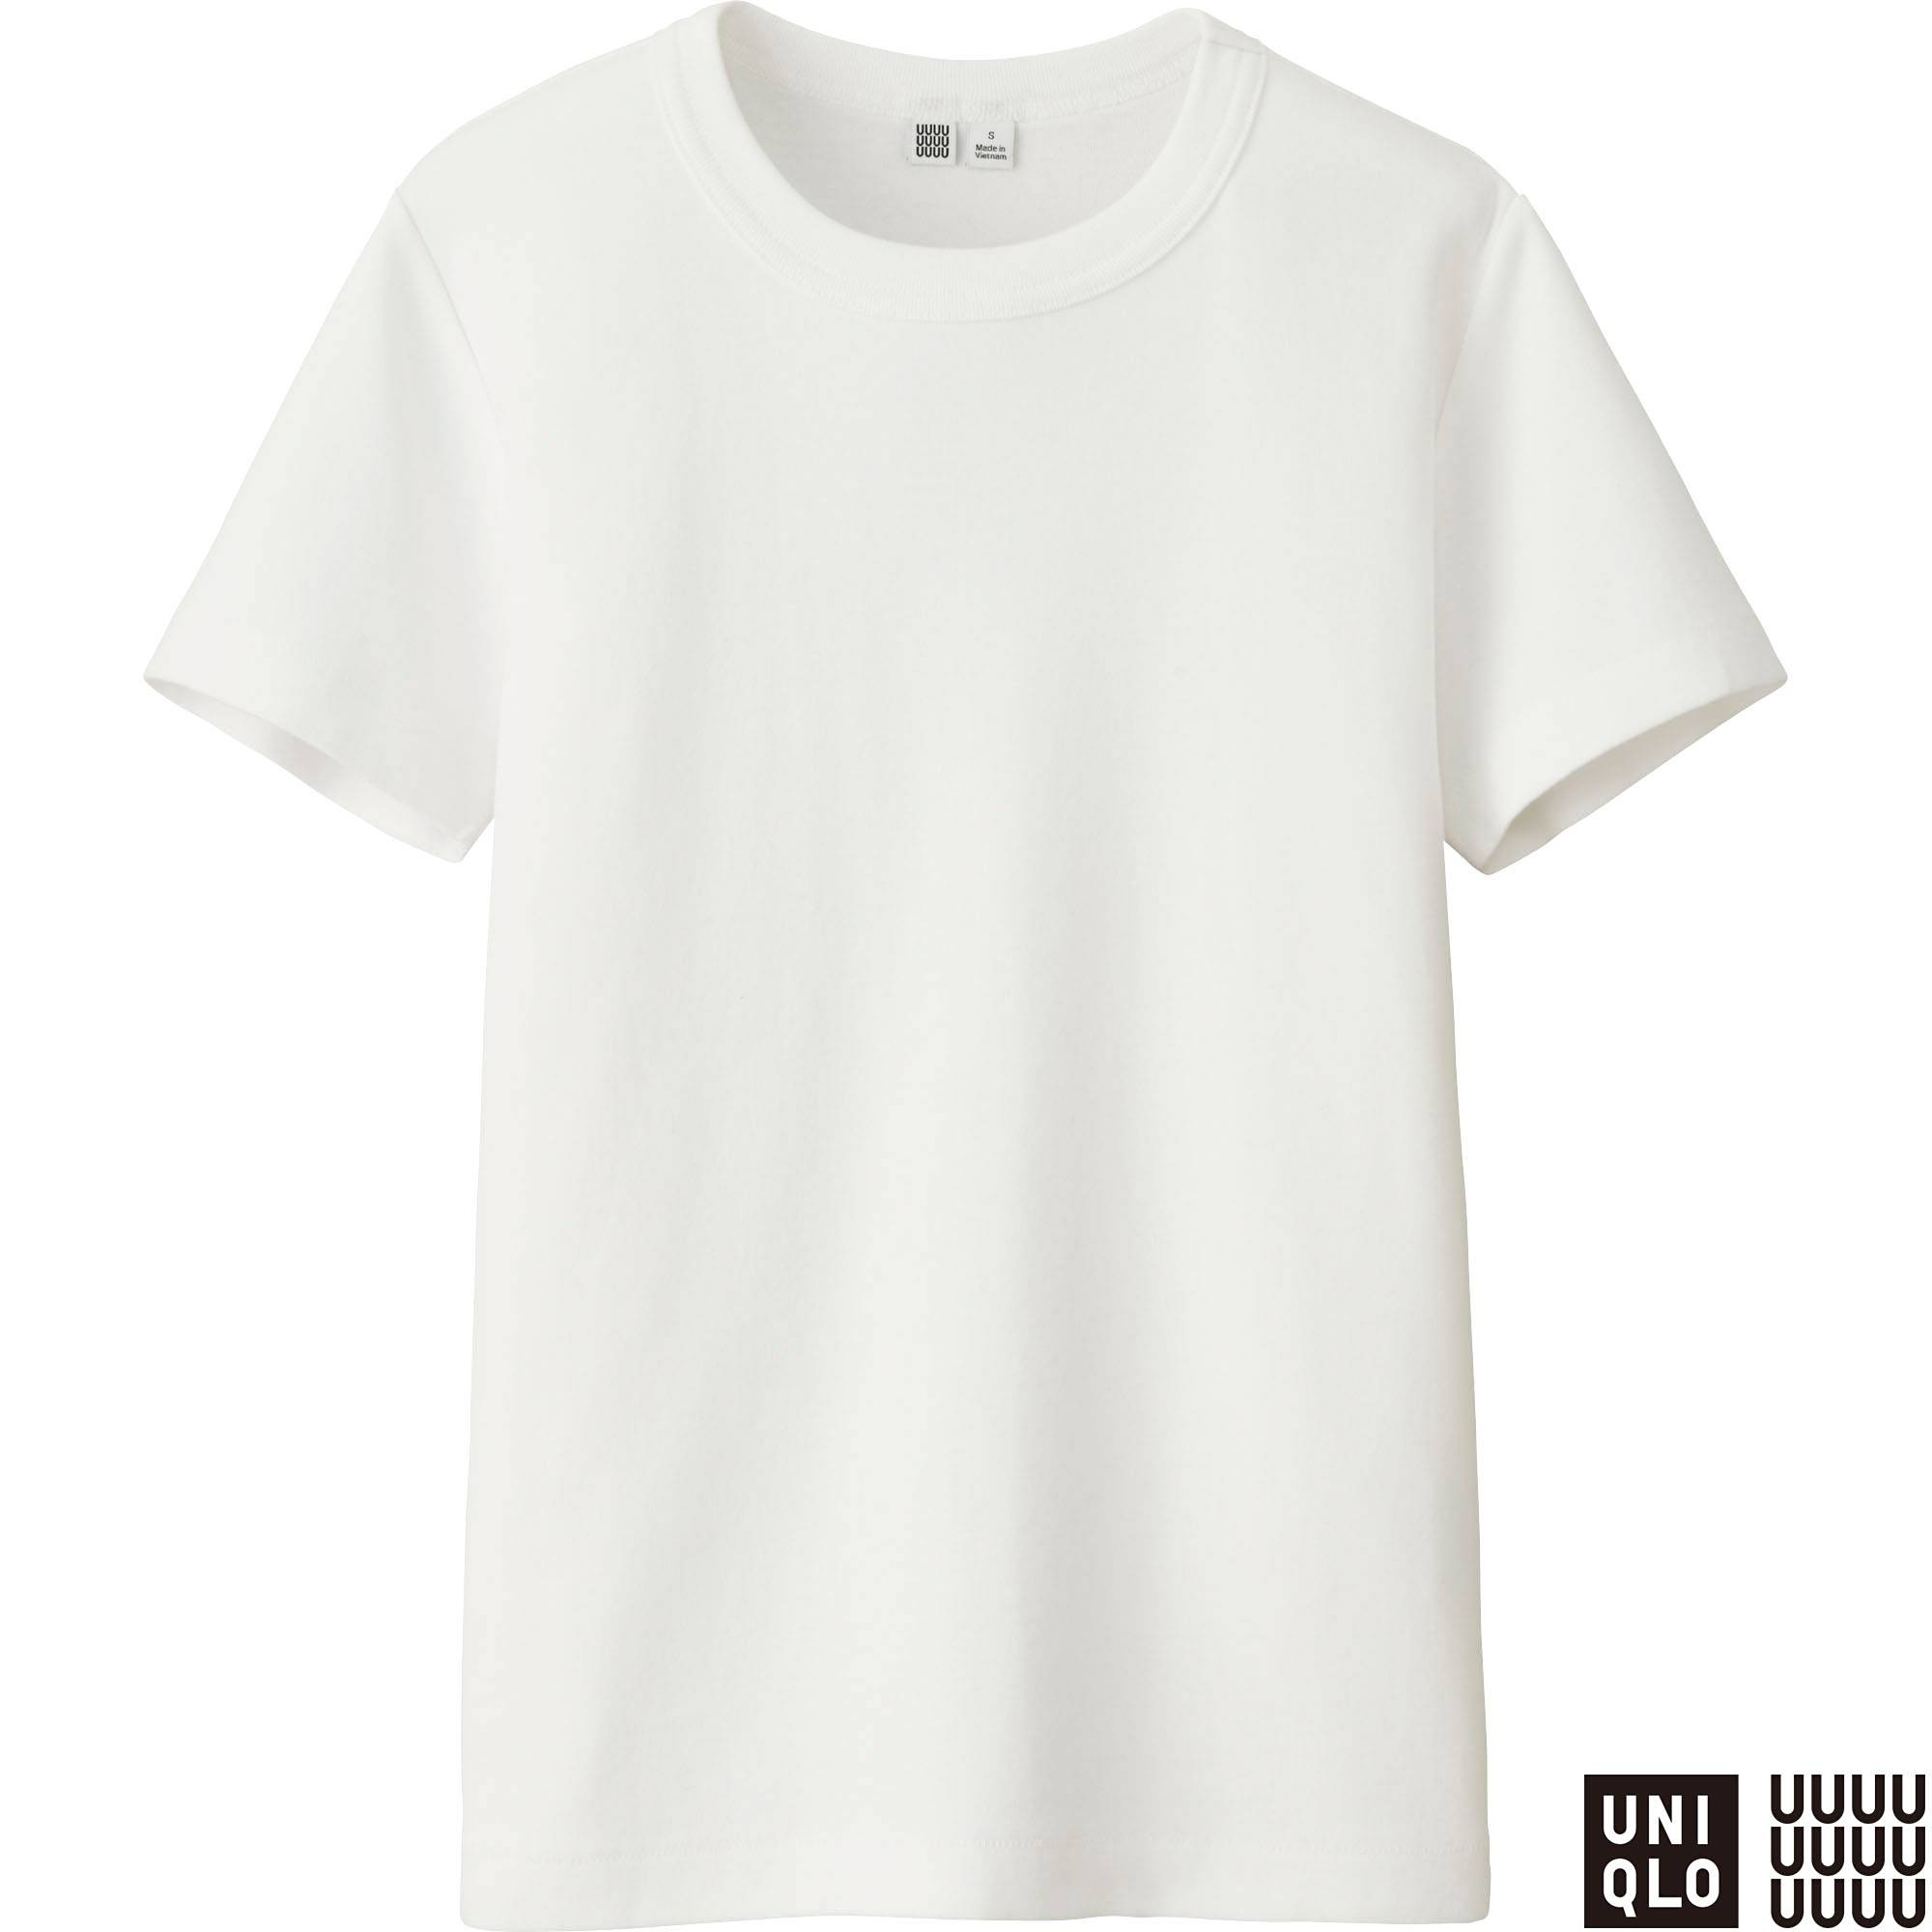 Best White T Shirts- Gap, Reformation, Everlane, Hanes